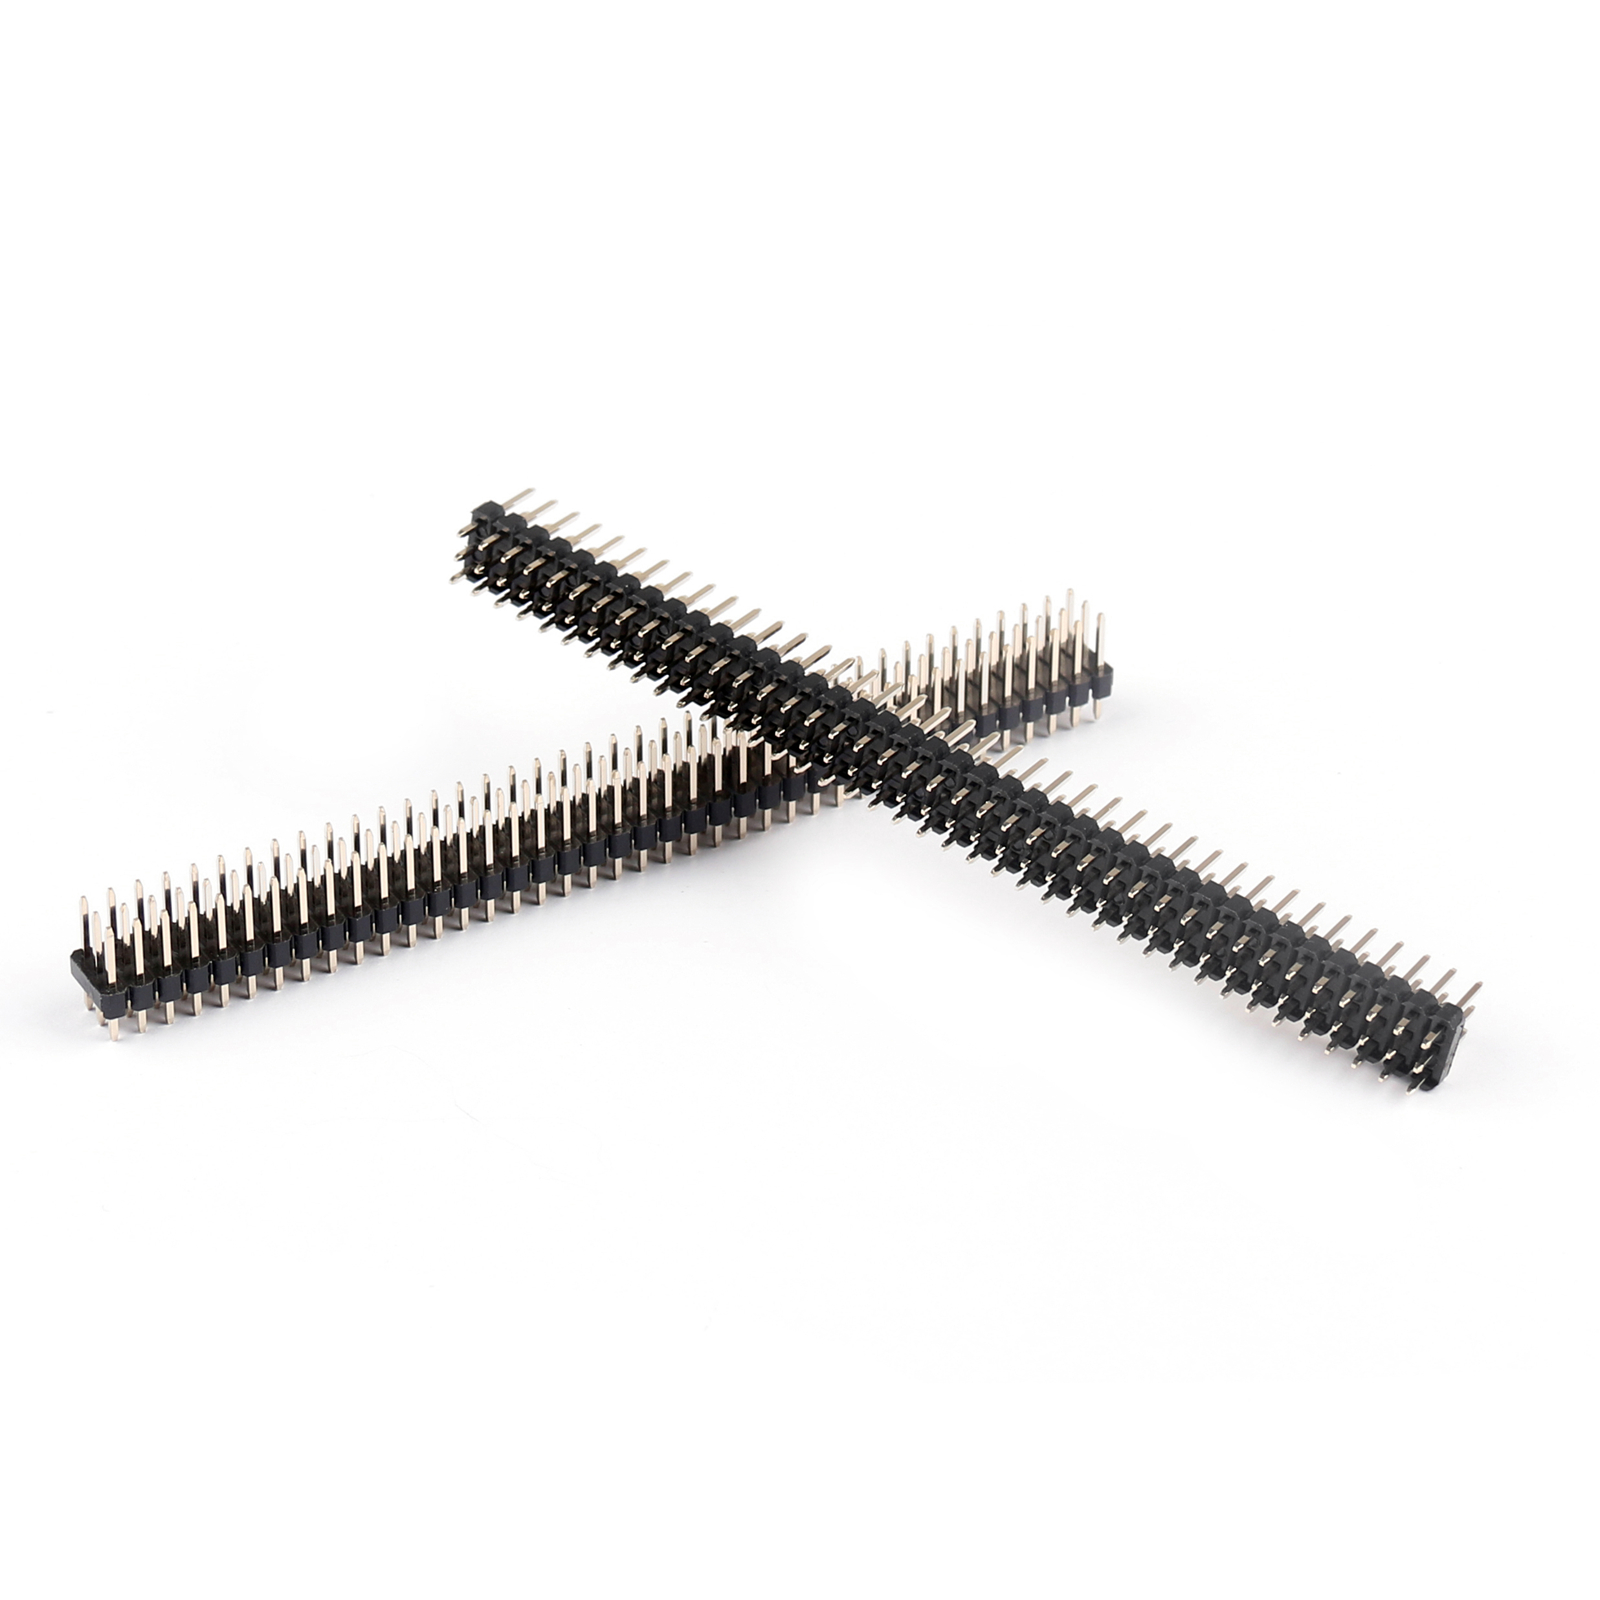 4x Gold Plated 3x40pin 2 54mm Male Three Row Strip Female